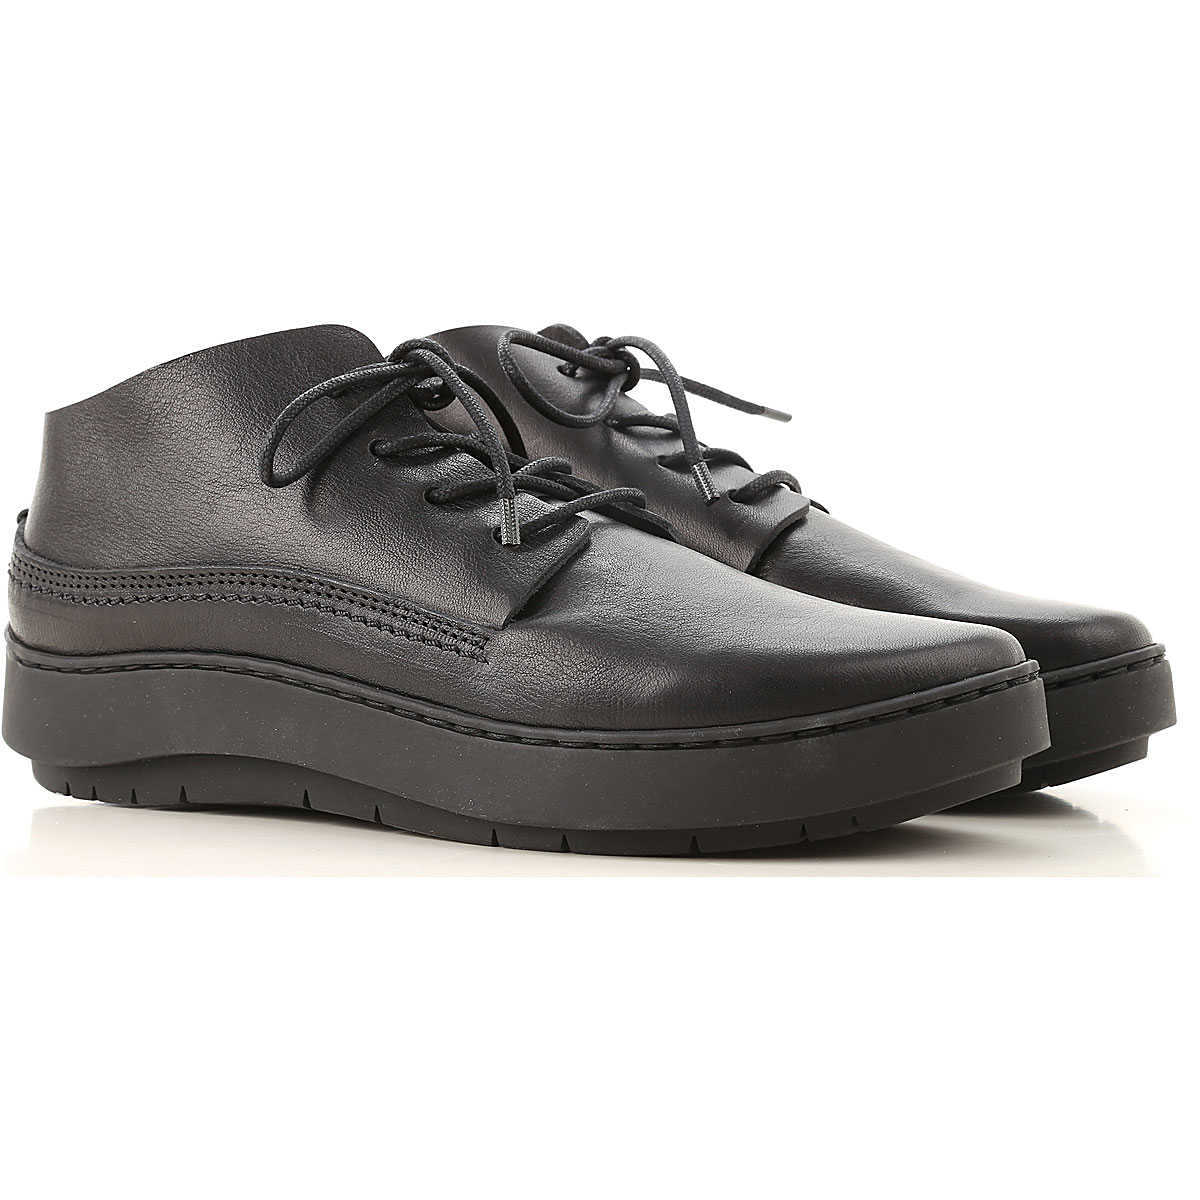 Trippen Lace Up Shoes for Men Oxfords 3.5 4.5 5.5 6.5 7.5 8.5 Derbies and Brogues UK - GOOFASH